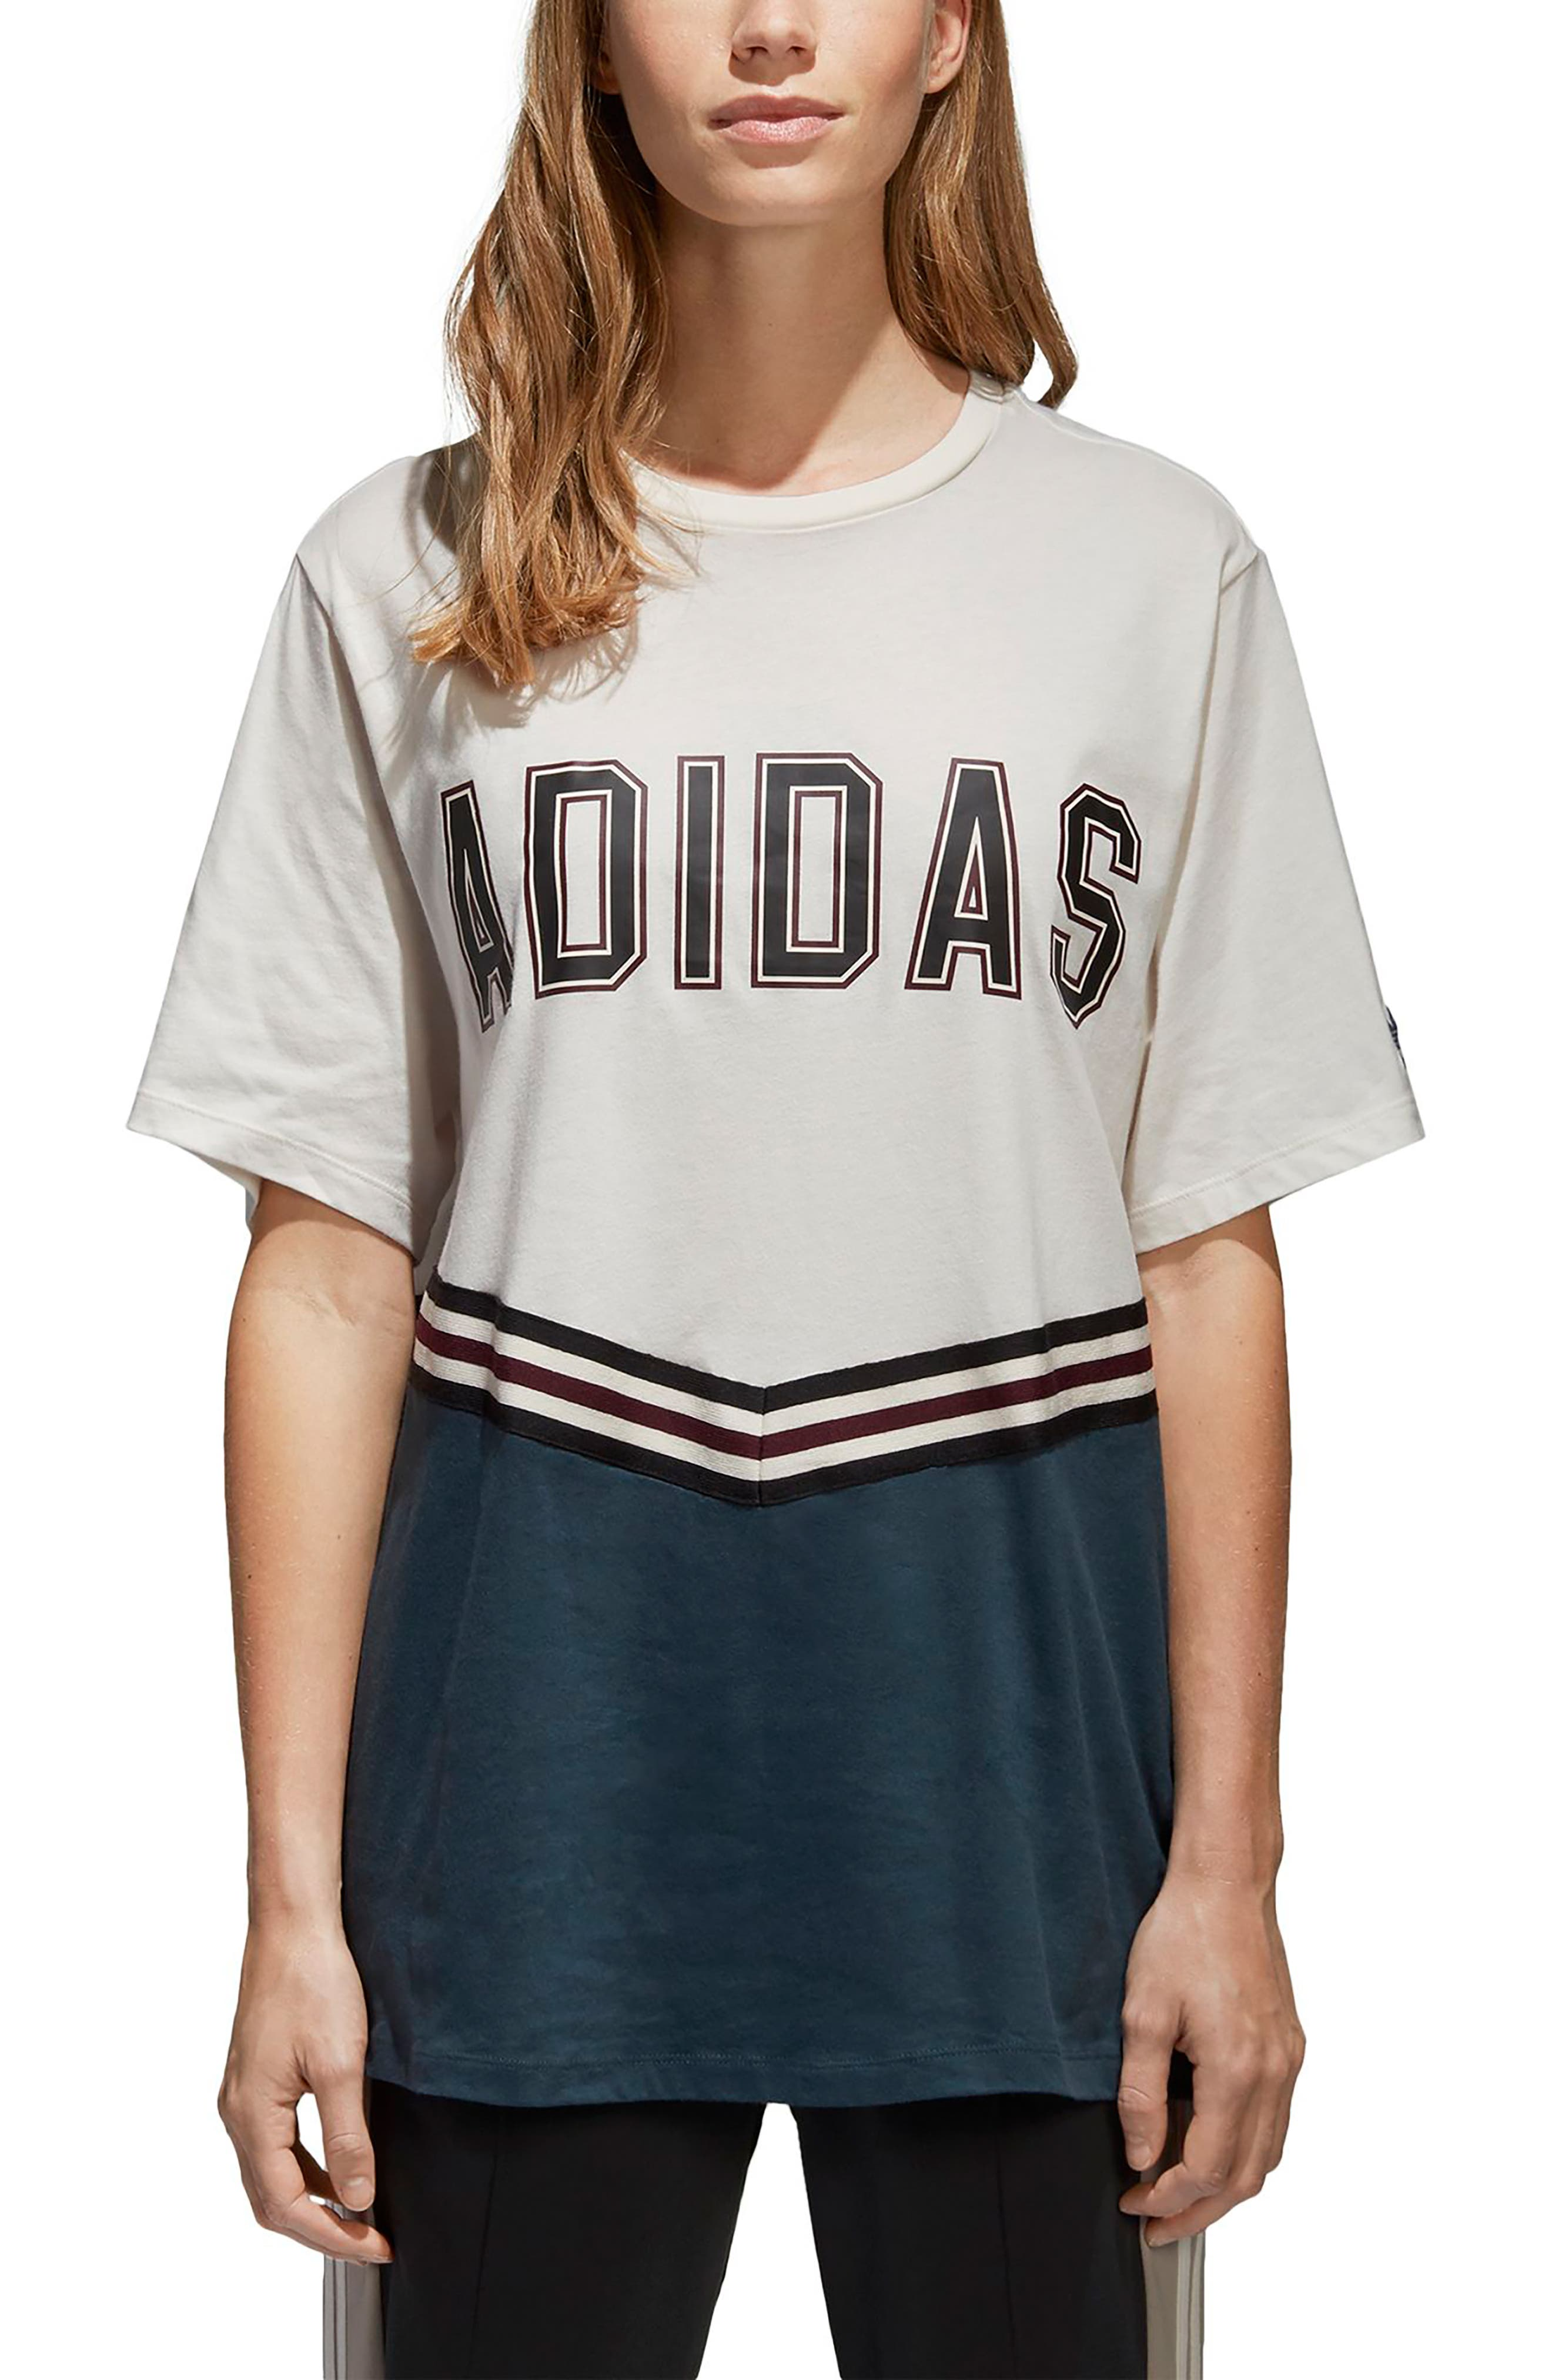 Adibreak Tee,                         Main,                         color, 100